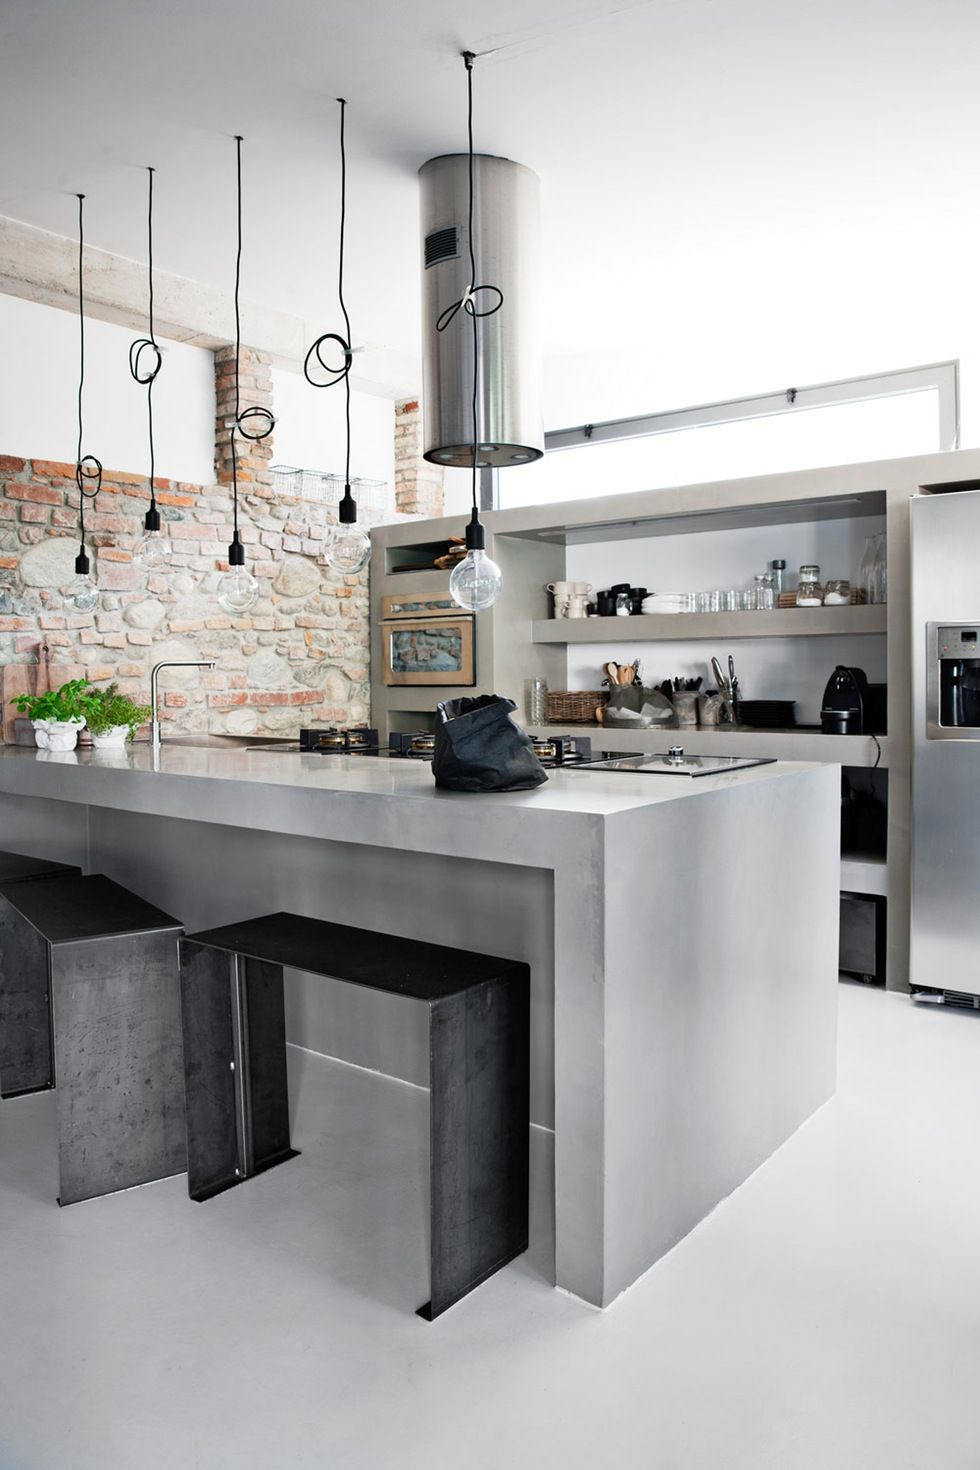 Küche Industrielook White And Concrete For An Industrial Look Kitchen Pinterest